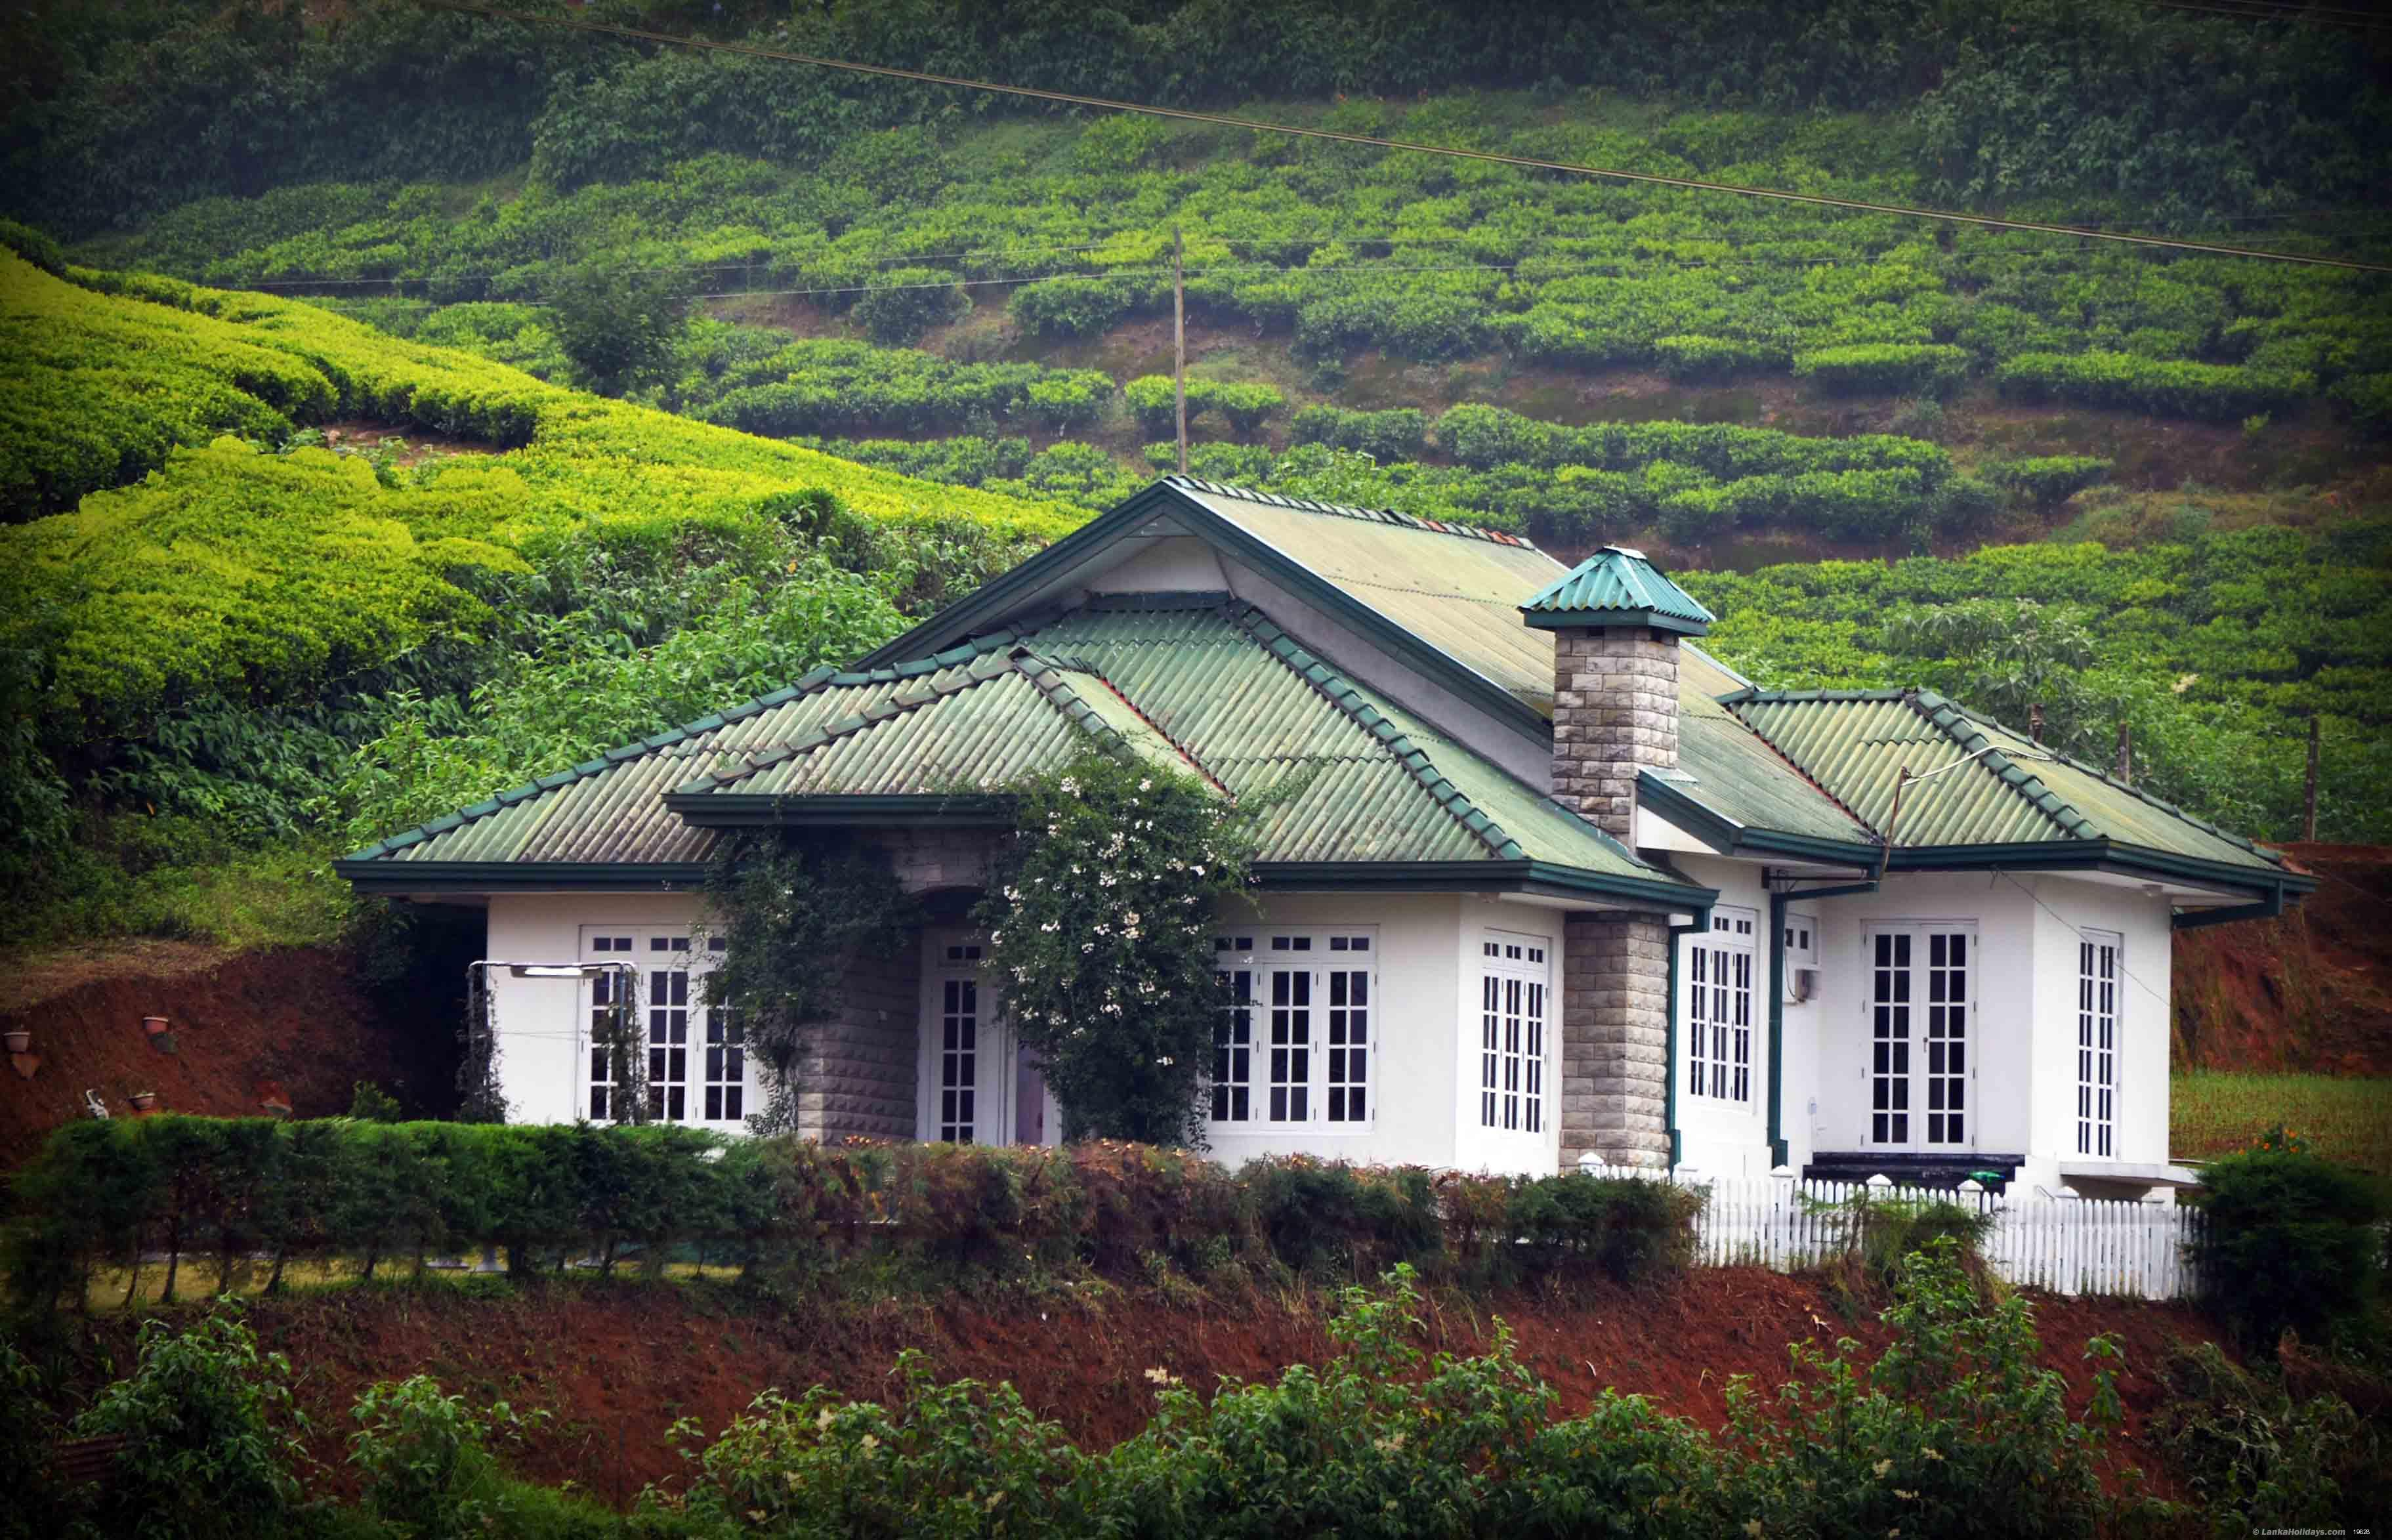 serviced bungalows in nuwara eliya greenhill luxury holiday bungalow. Black Bedroom Furniture Sets. Home Design Ideas